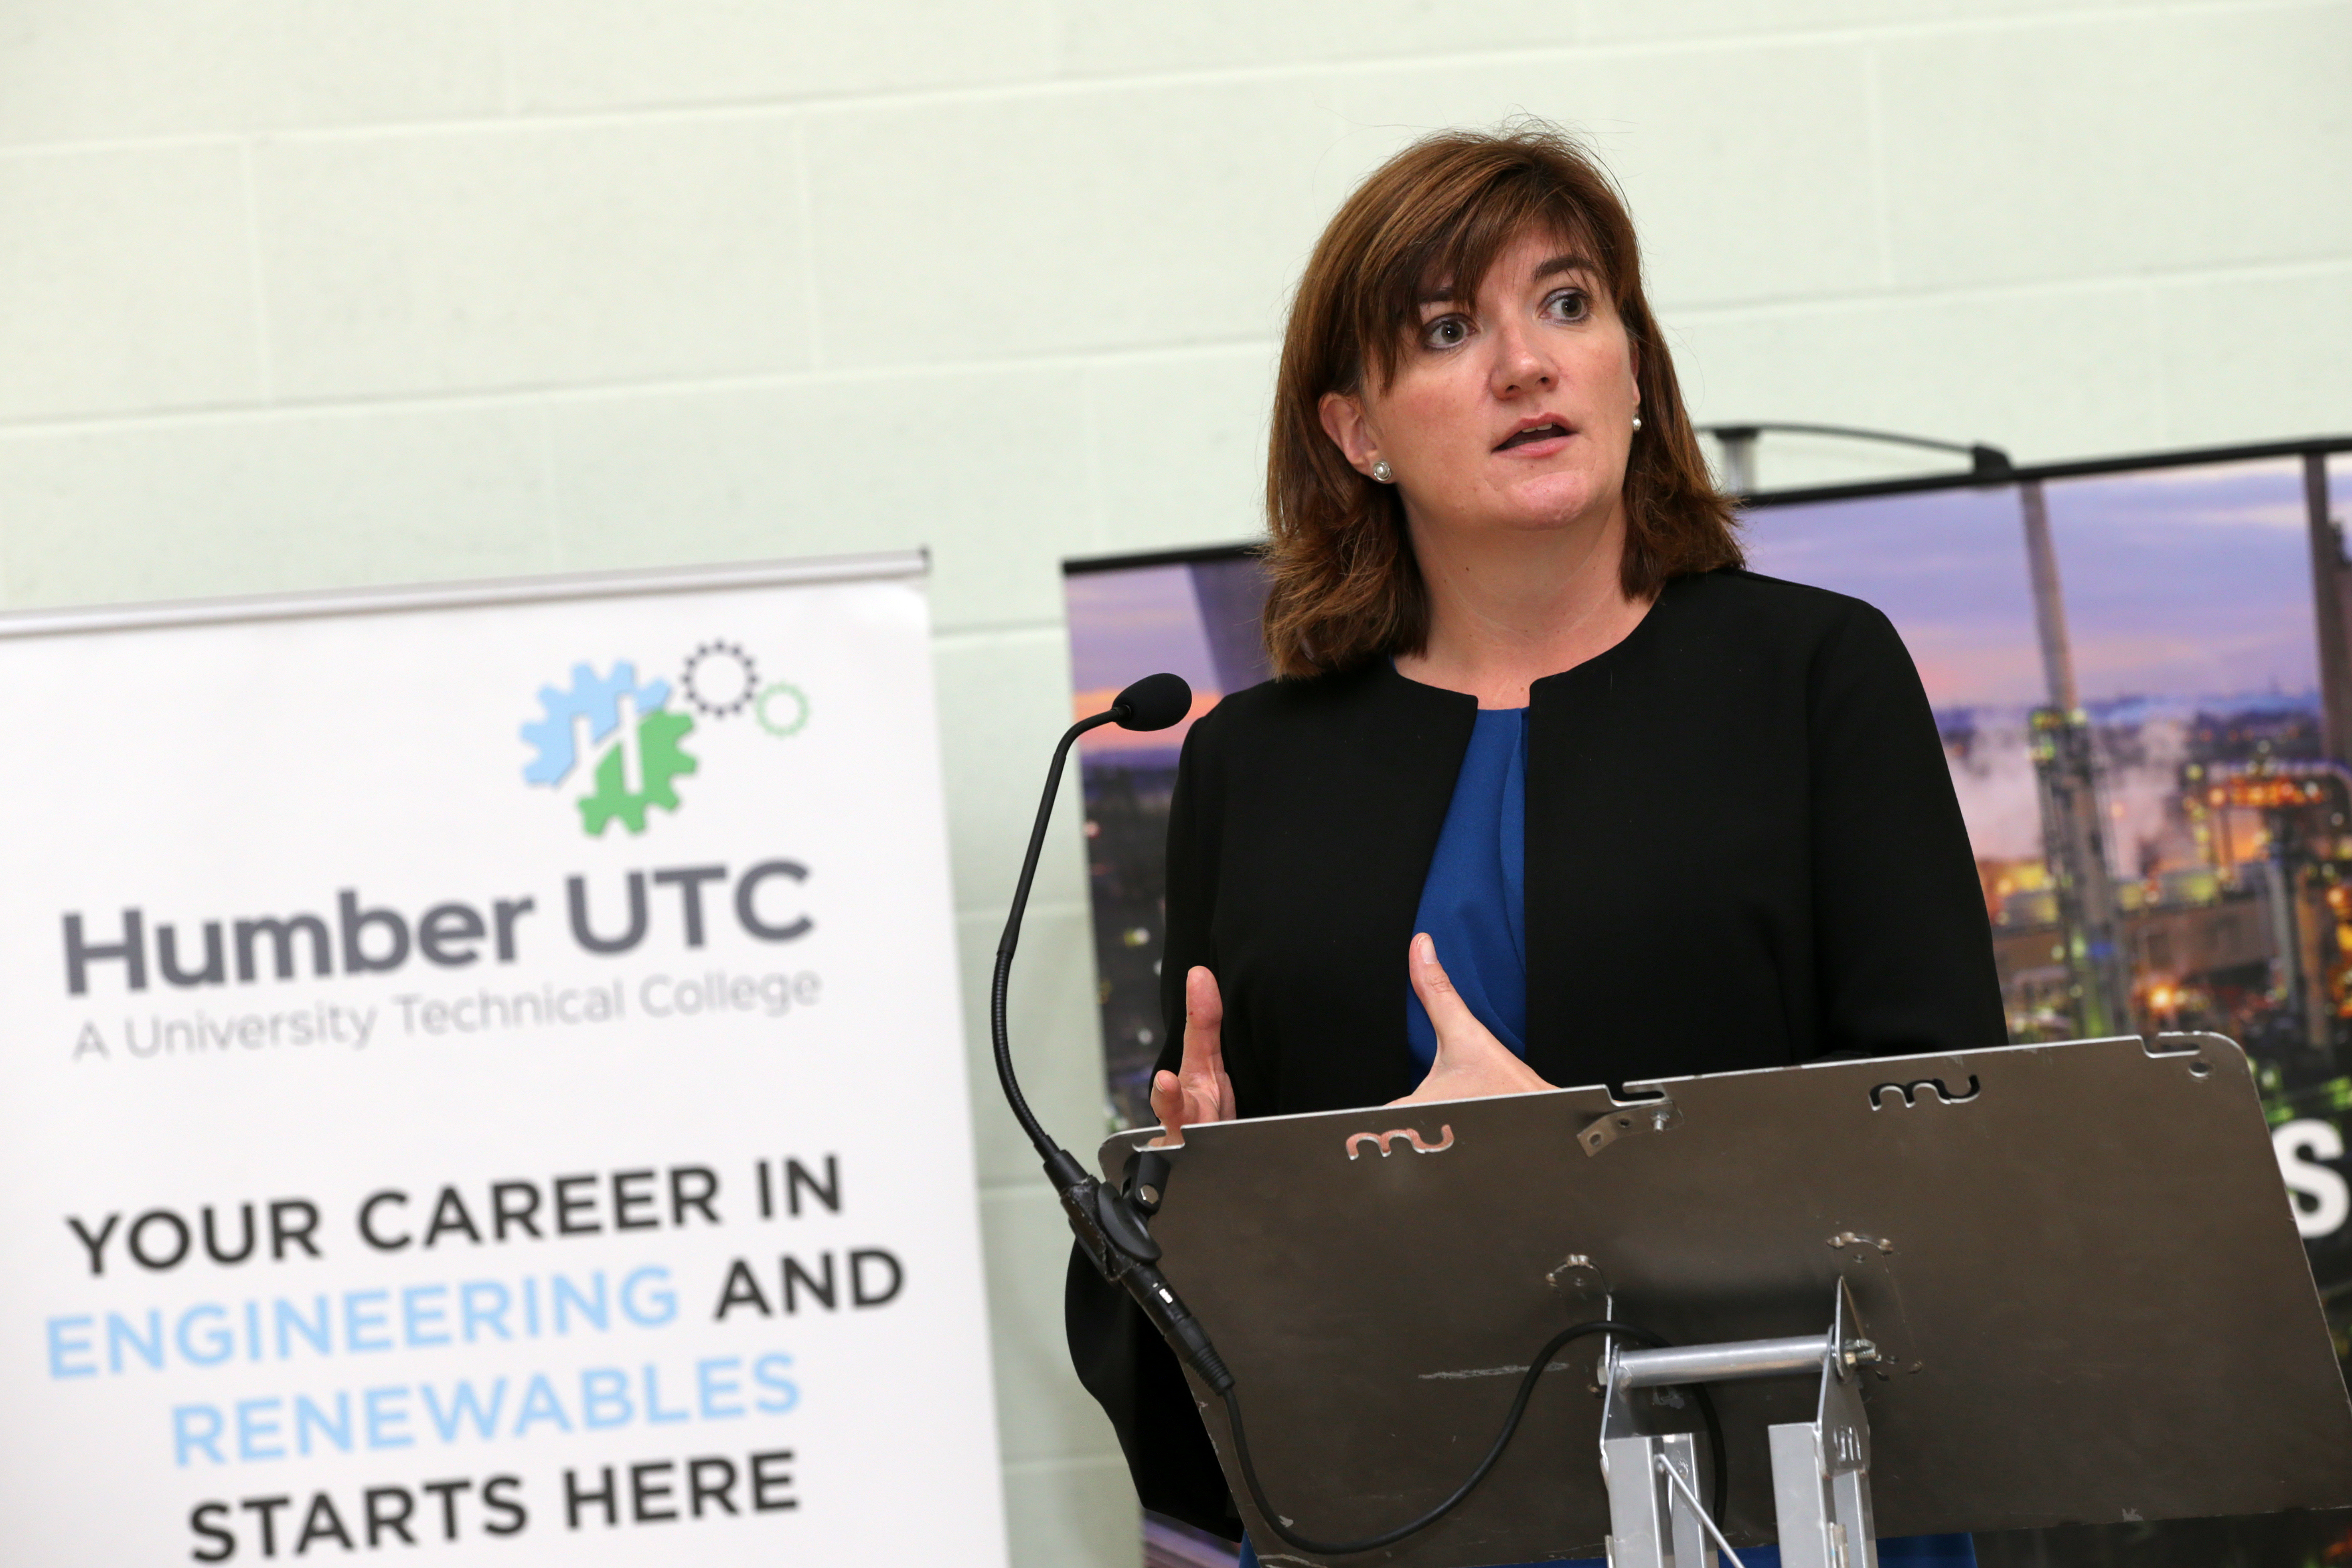 Humber UTC is visited by Rt. Hon Nicky Morgan MP